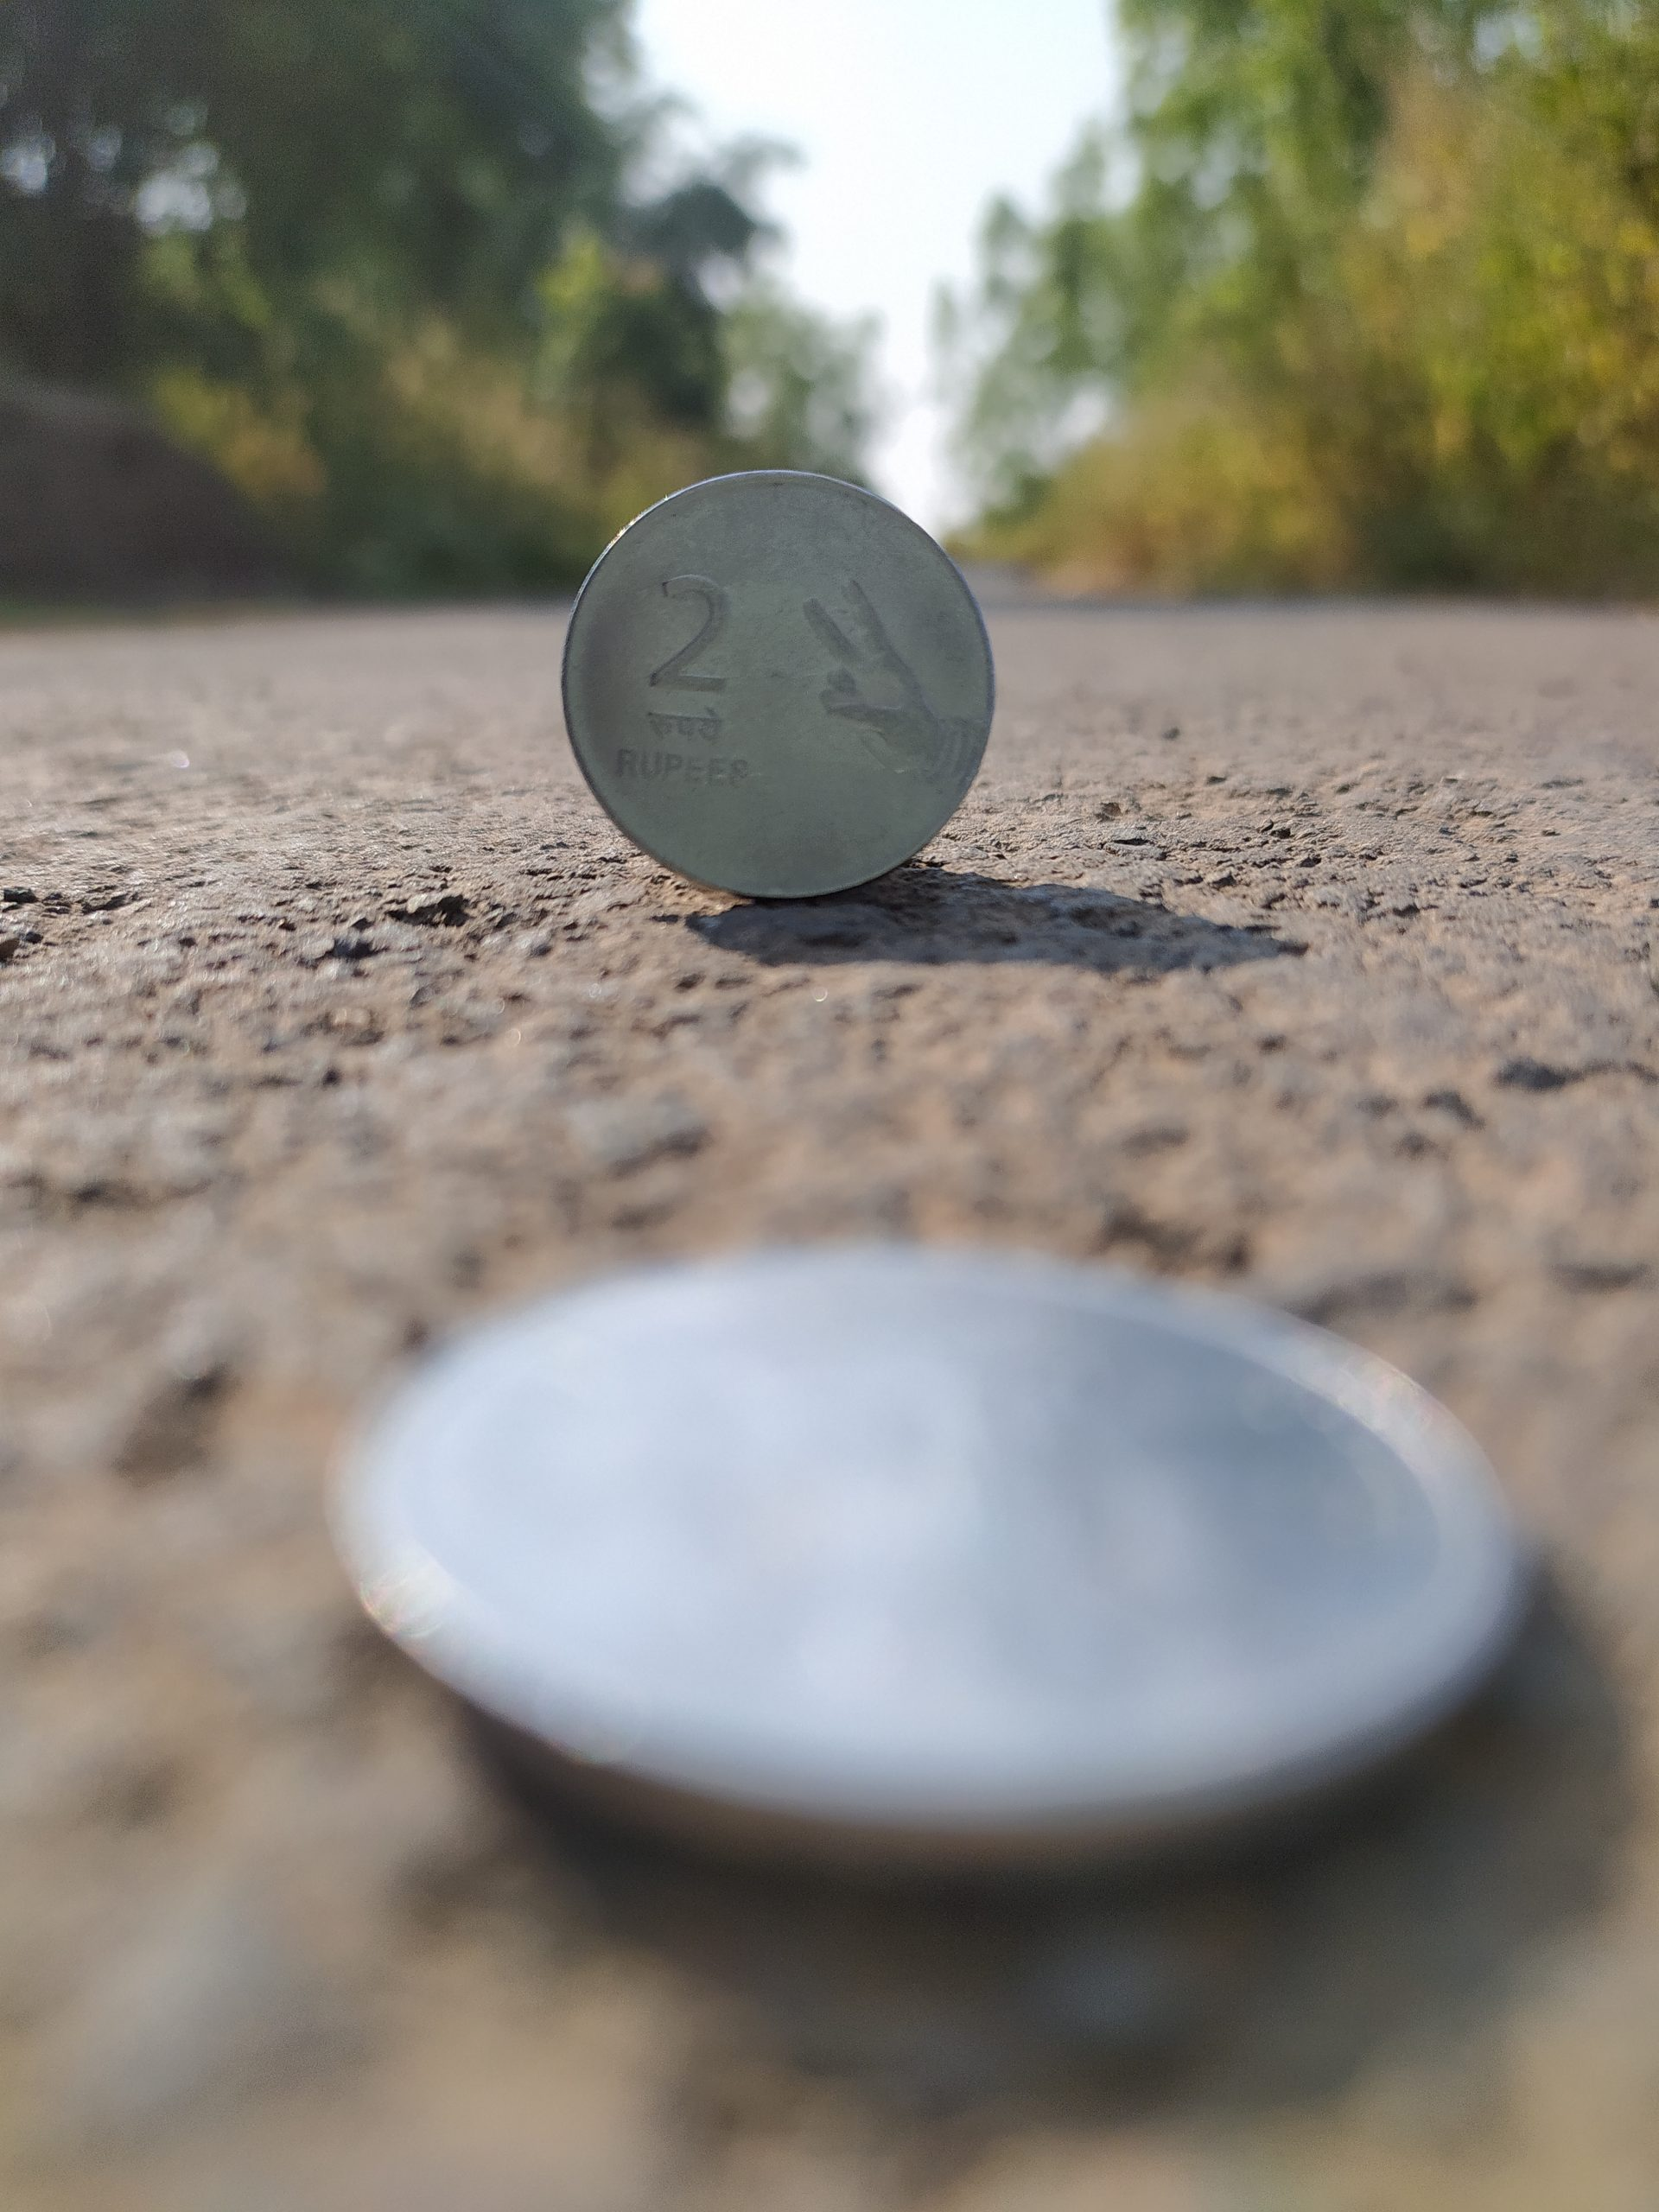 Two rupees coin